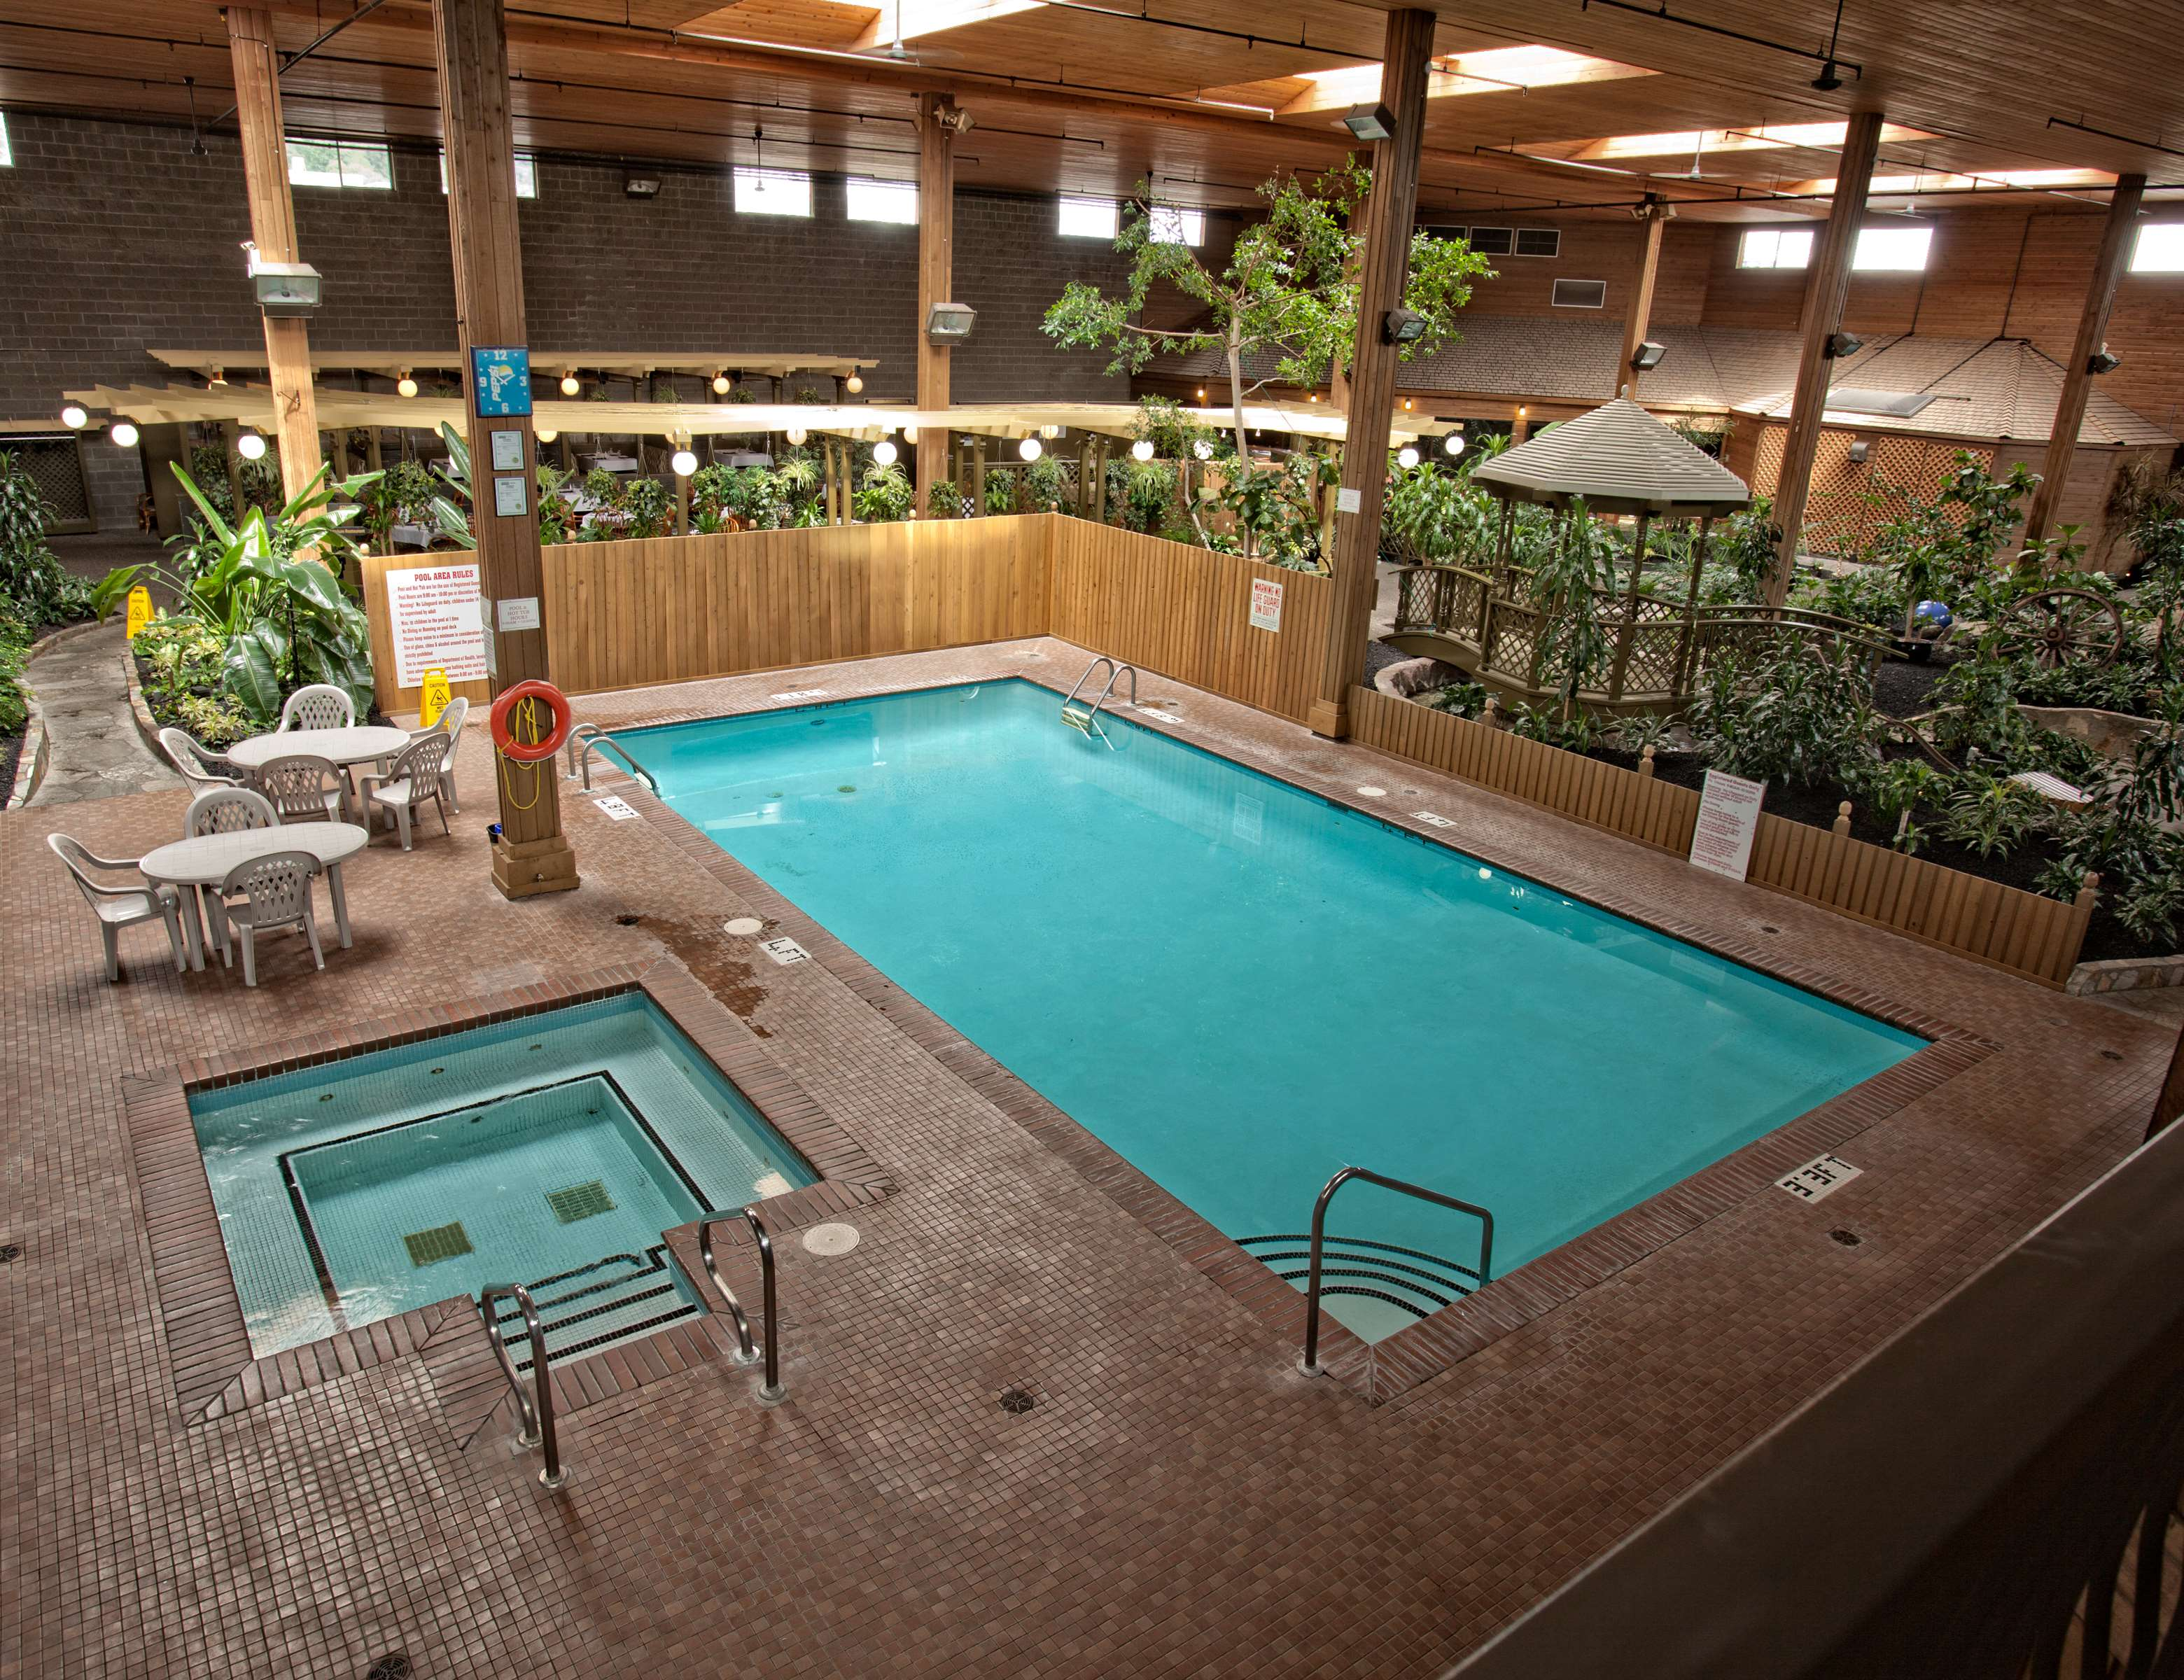 Best Western Rainbow Country Inn in Chilliwack: Indoor Pool and Hot Tub in Tropical Atrium Gardens